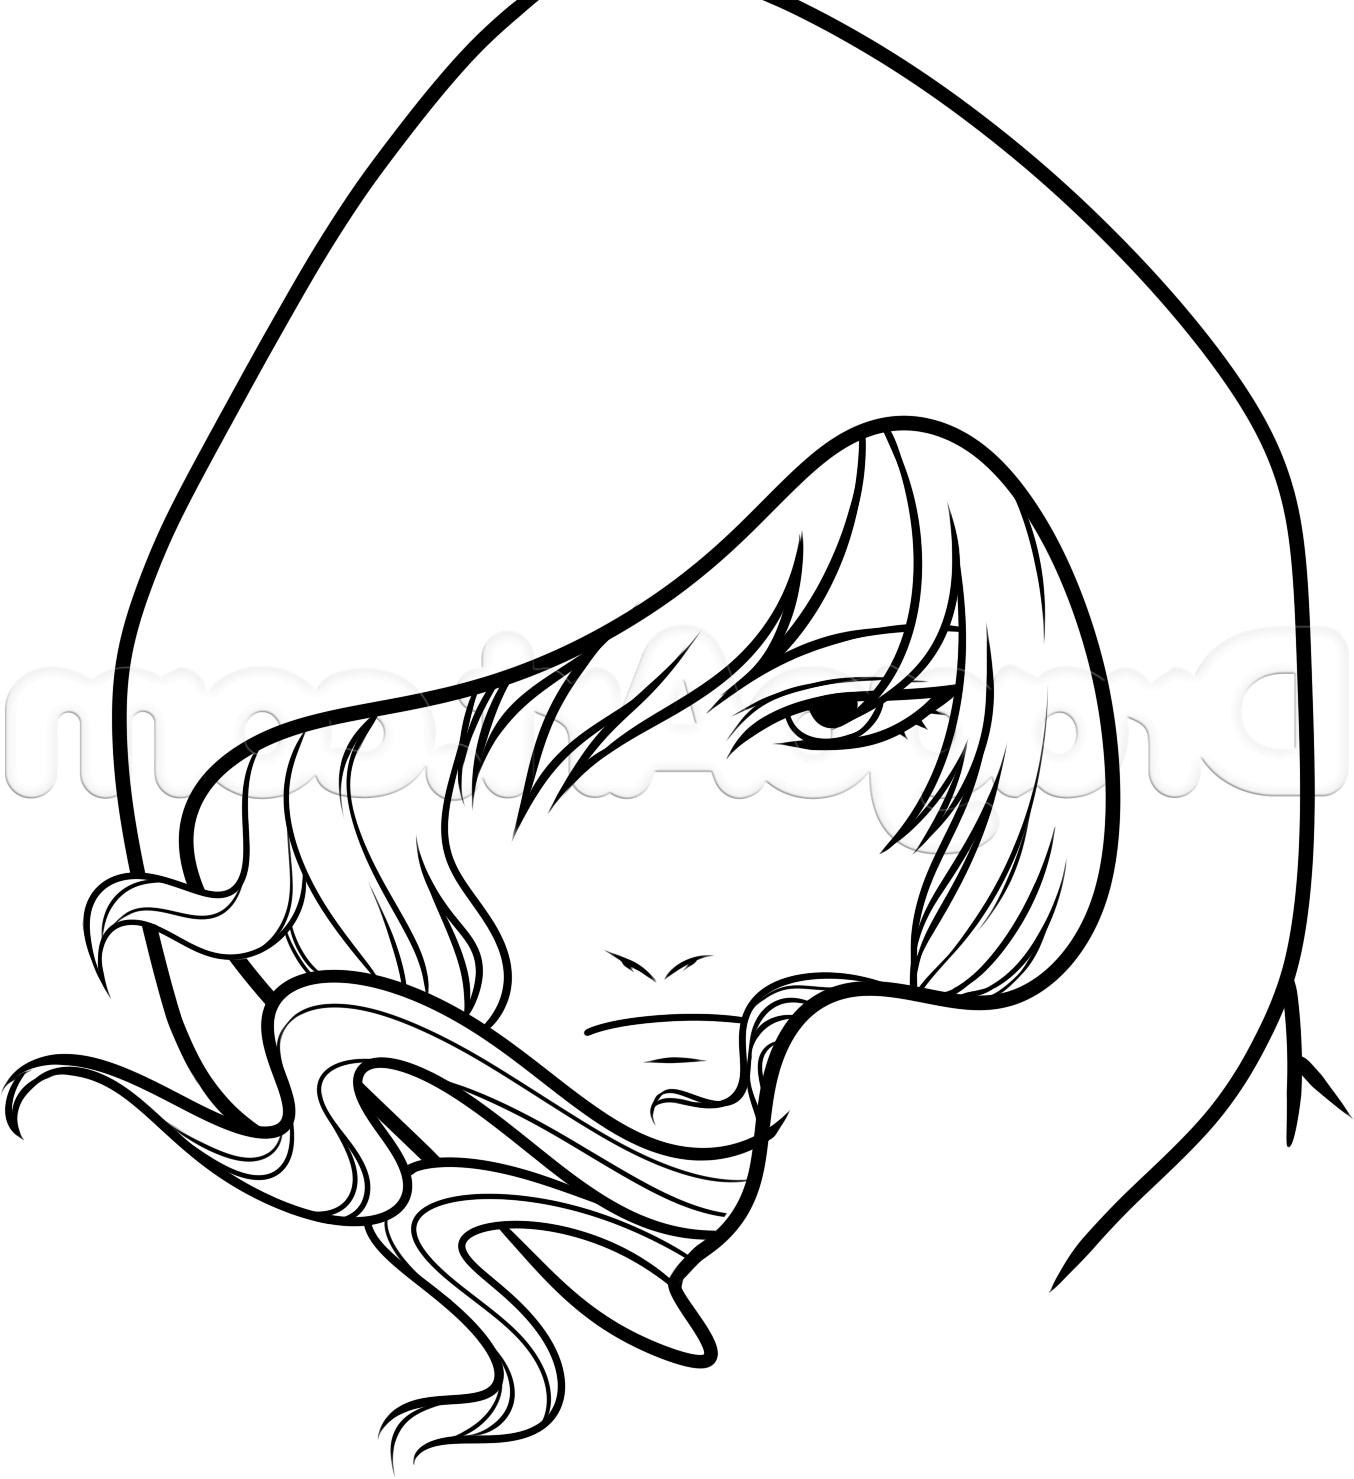 1354x1479 Easy To Draw Anime Characters Easy To Draw Anime Characters